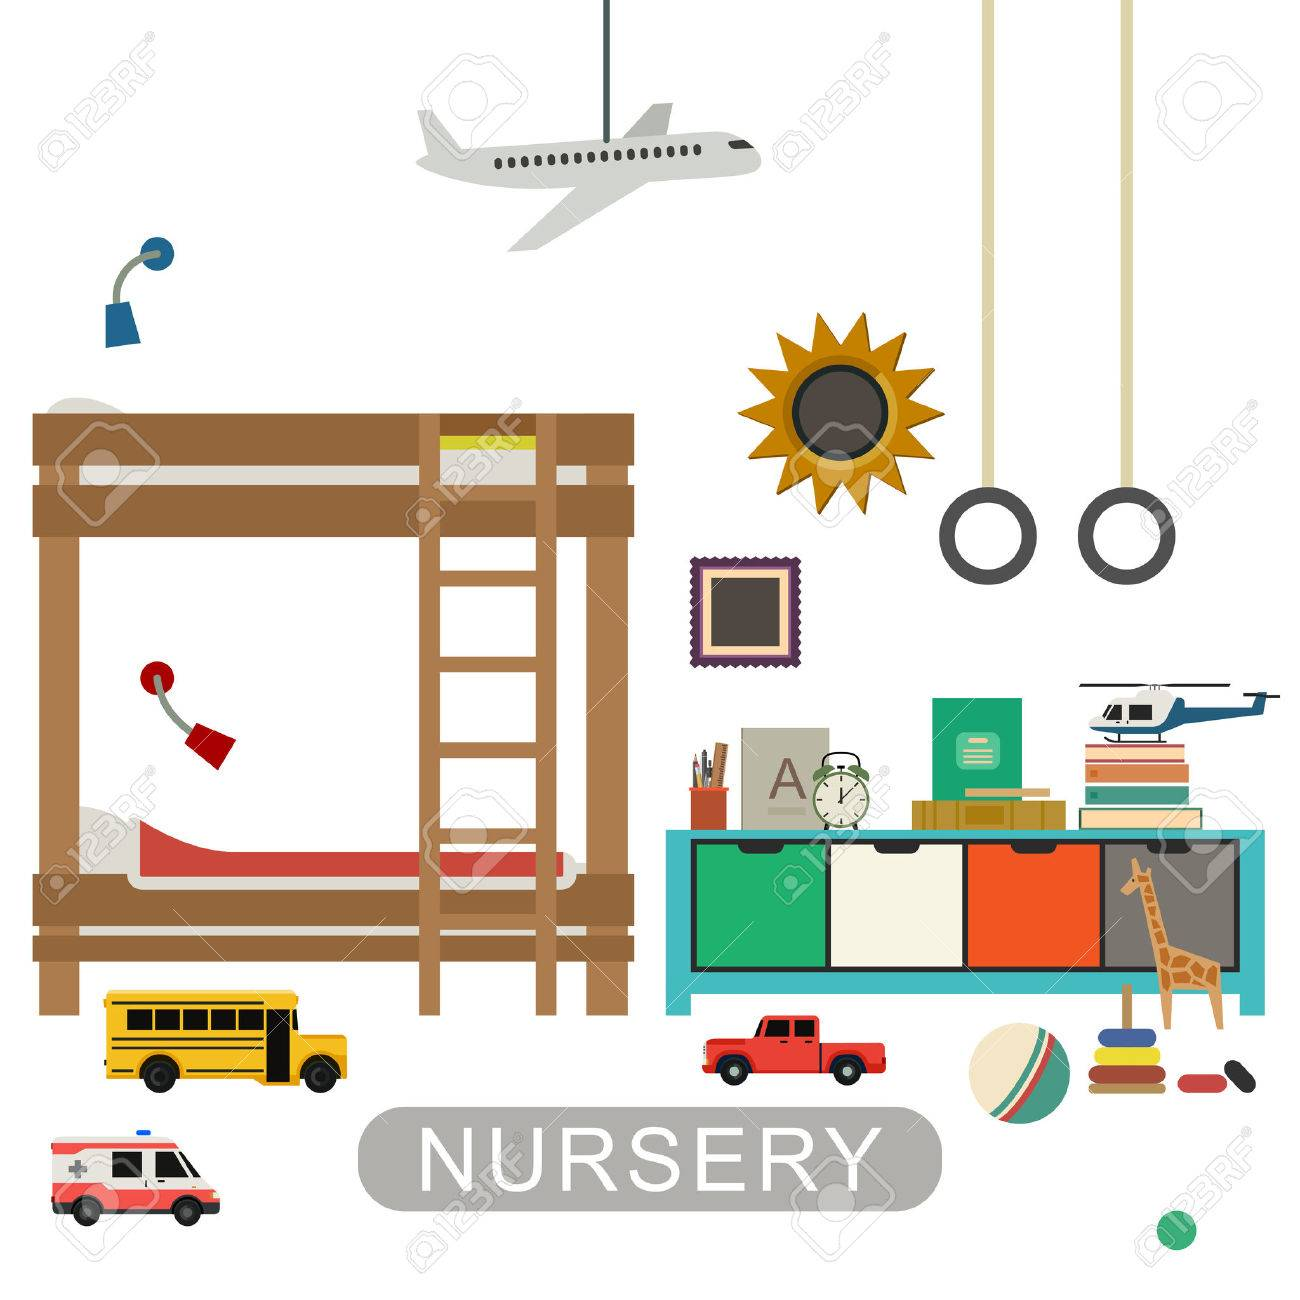 baby playroom interior with furniture and toys vector banner of nursery in flat style baby playroom furniture